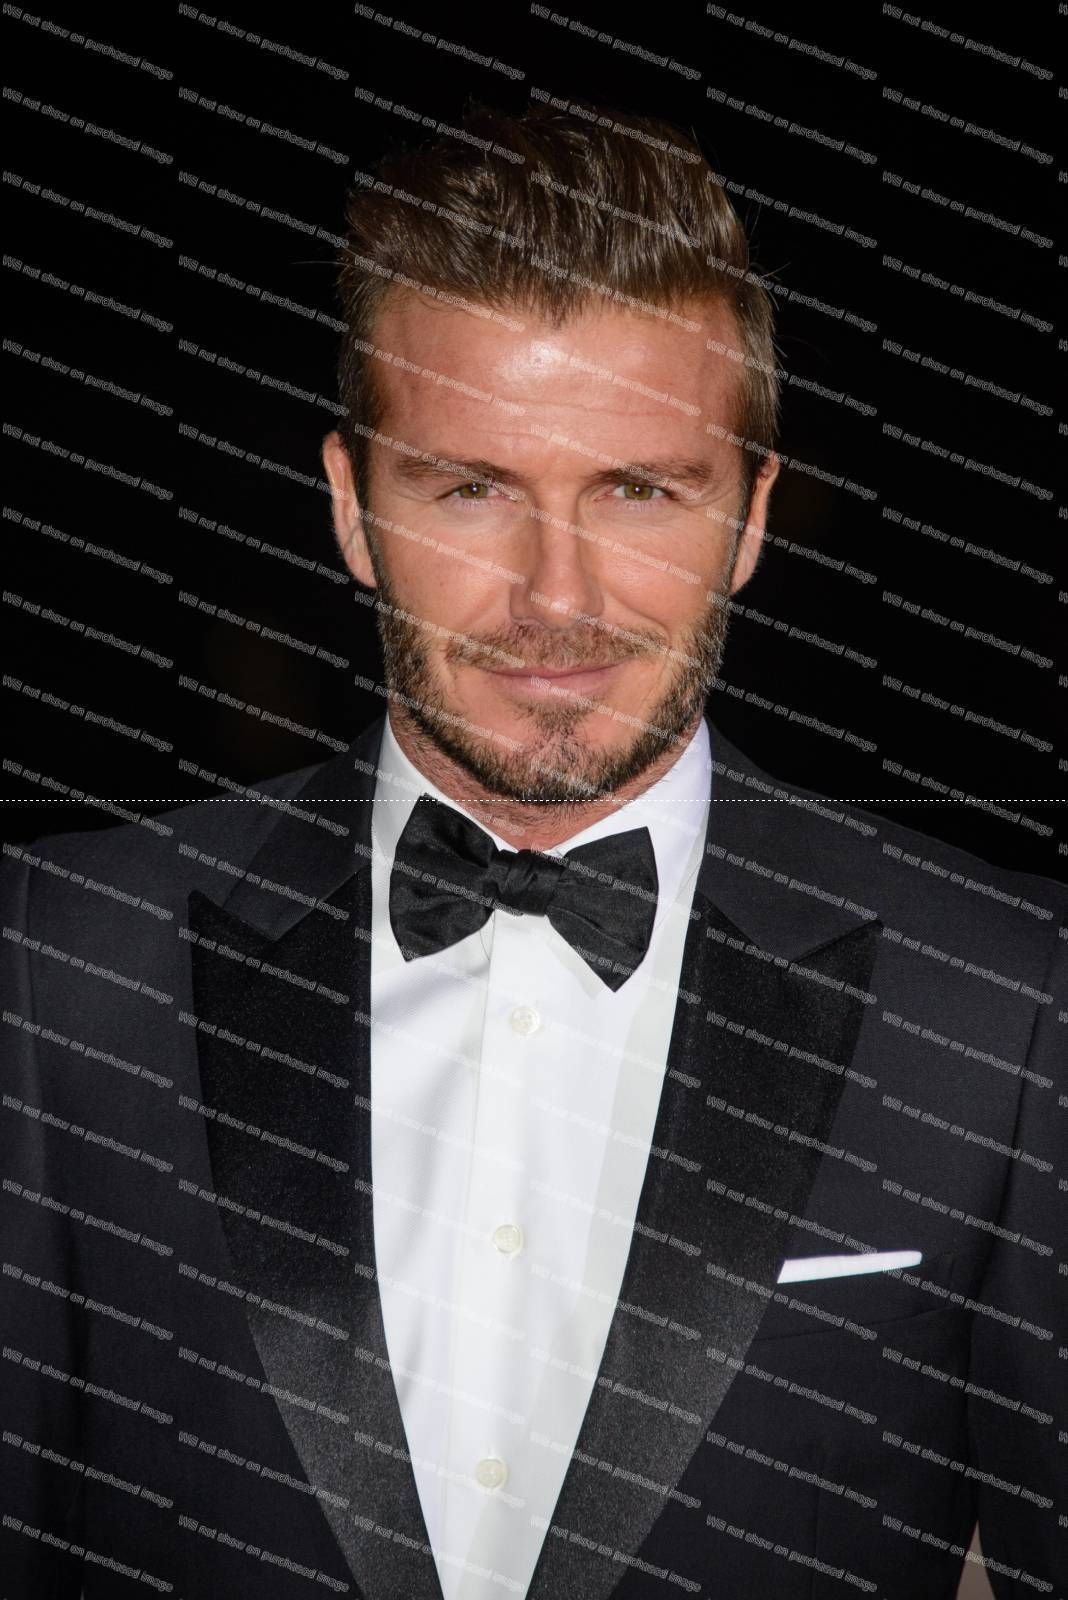 David Beckham Poster Picture Photo Print A2 A3 A4 7X5 6X4